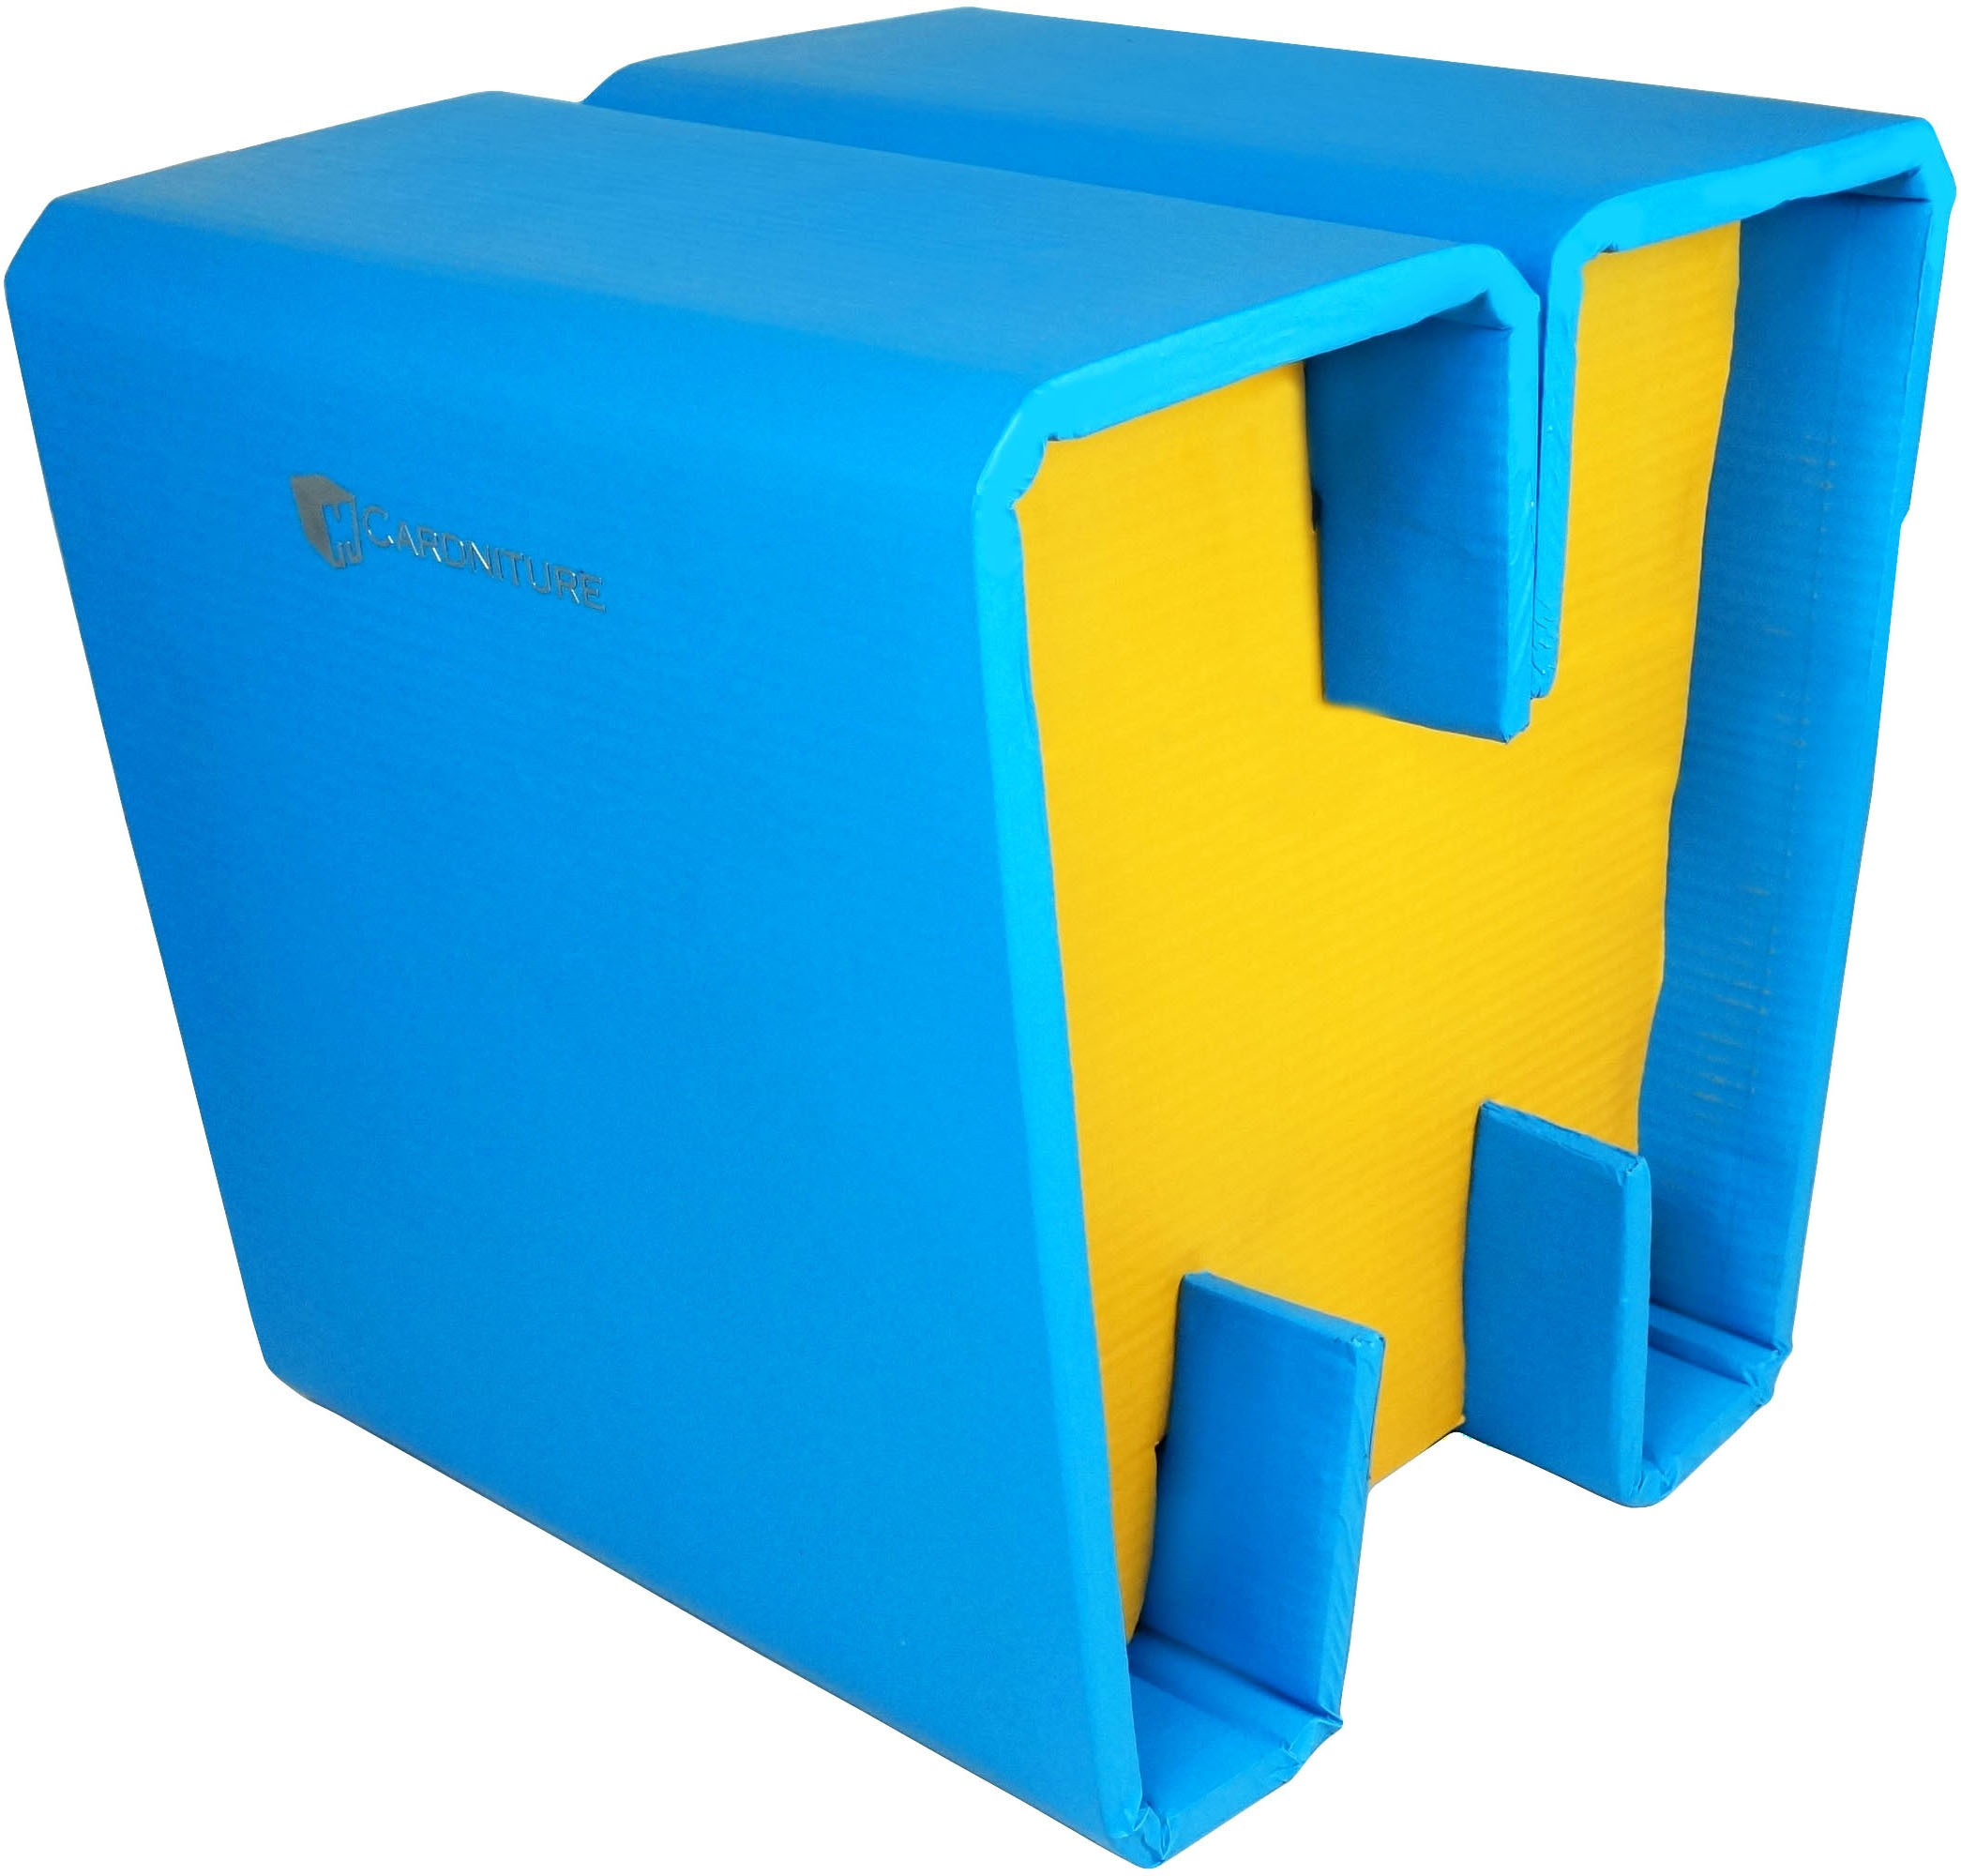 View Cardniture ZING Living & Bedroom Stool(Blue, Yellow) Furniture (Cardniture)